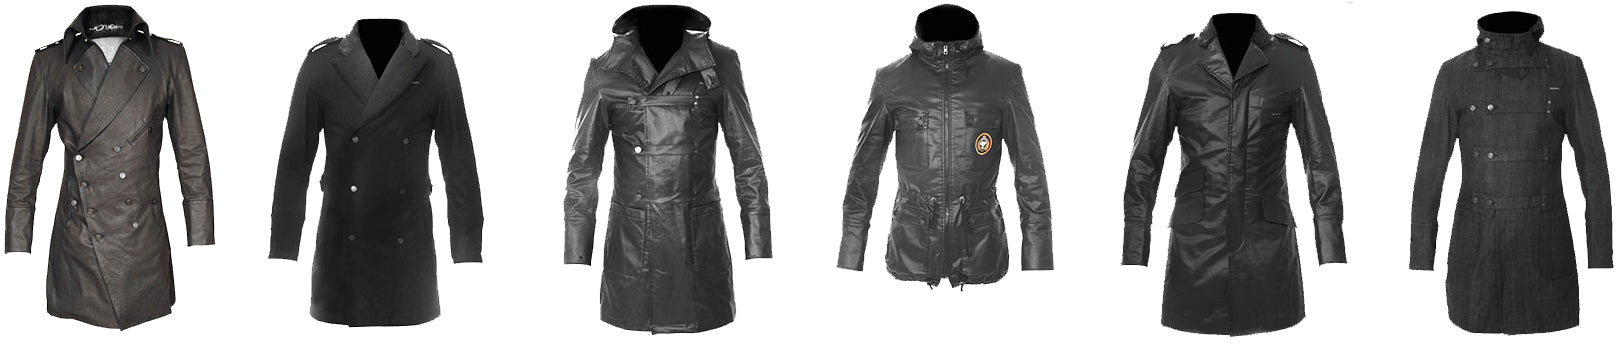 jackets_coats_motorcycle_mocycle